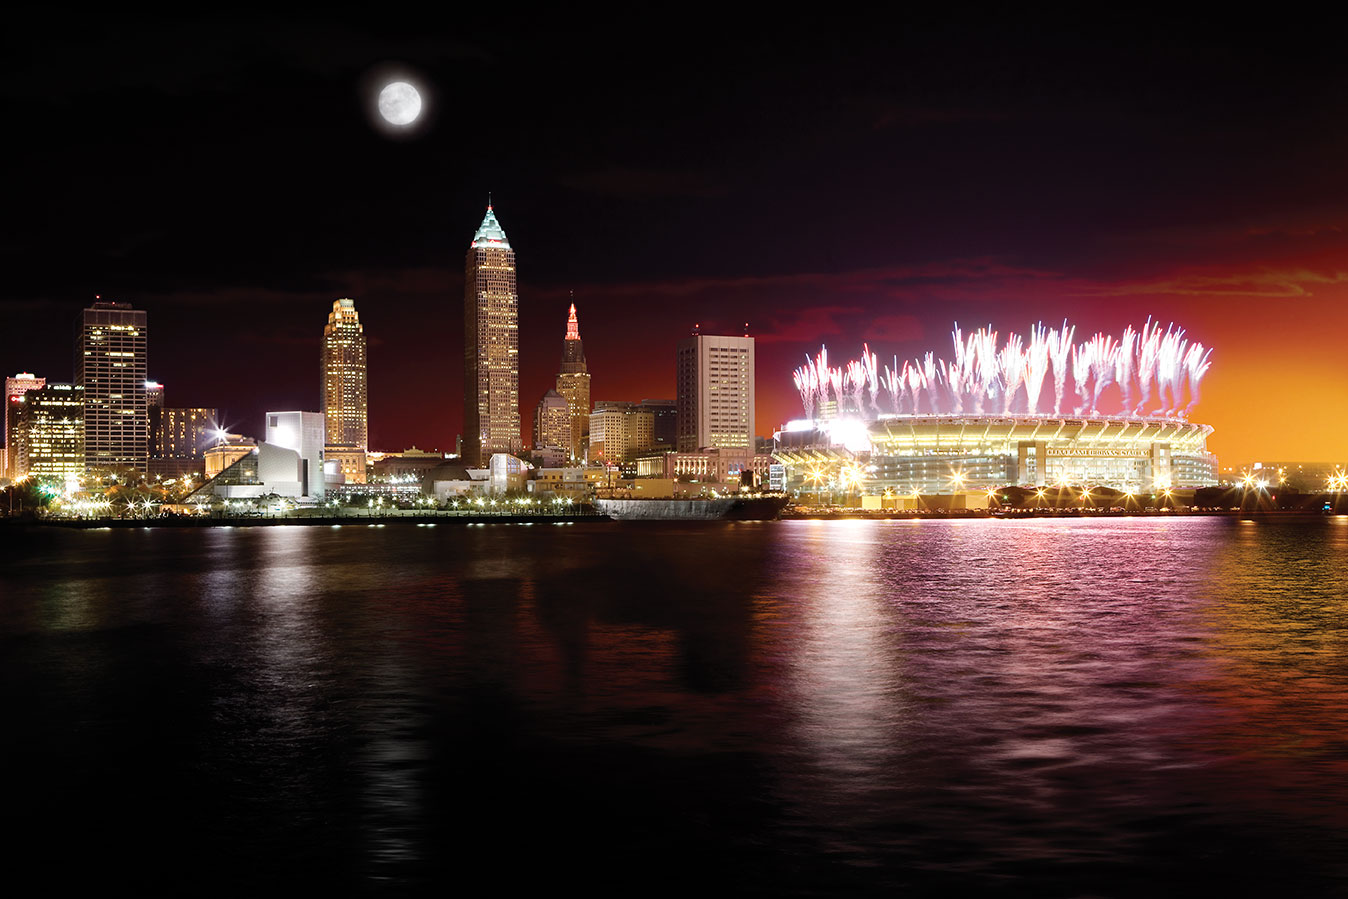 TRG image of downtown Cleveland at night with fireworks.